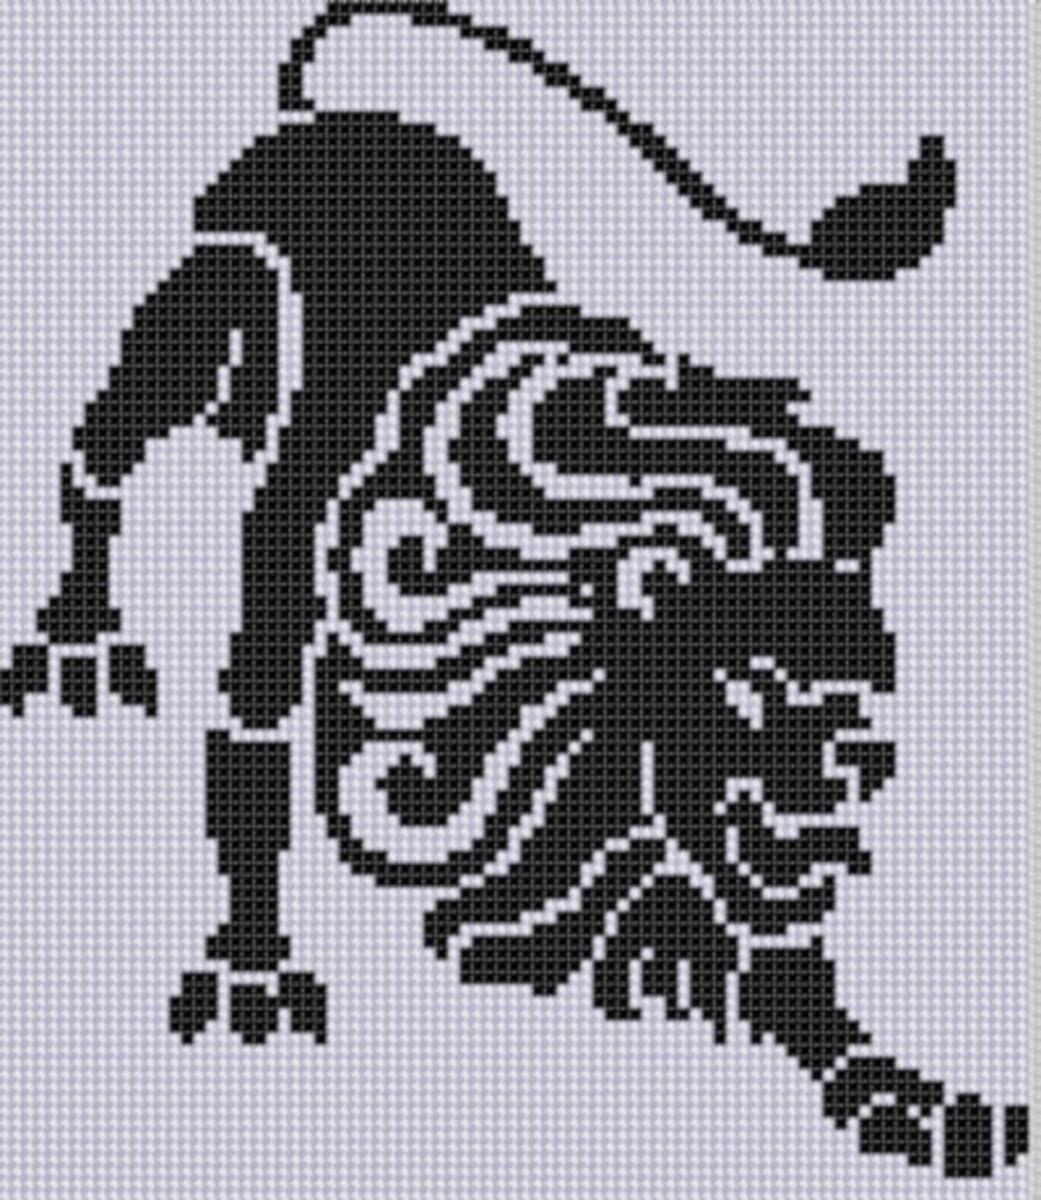 Mother Bee Designs Zodiac Leo 2 Cross Stitch Pattern